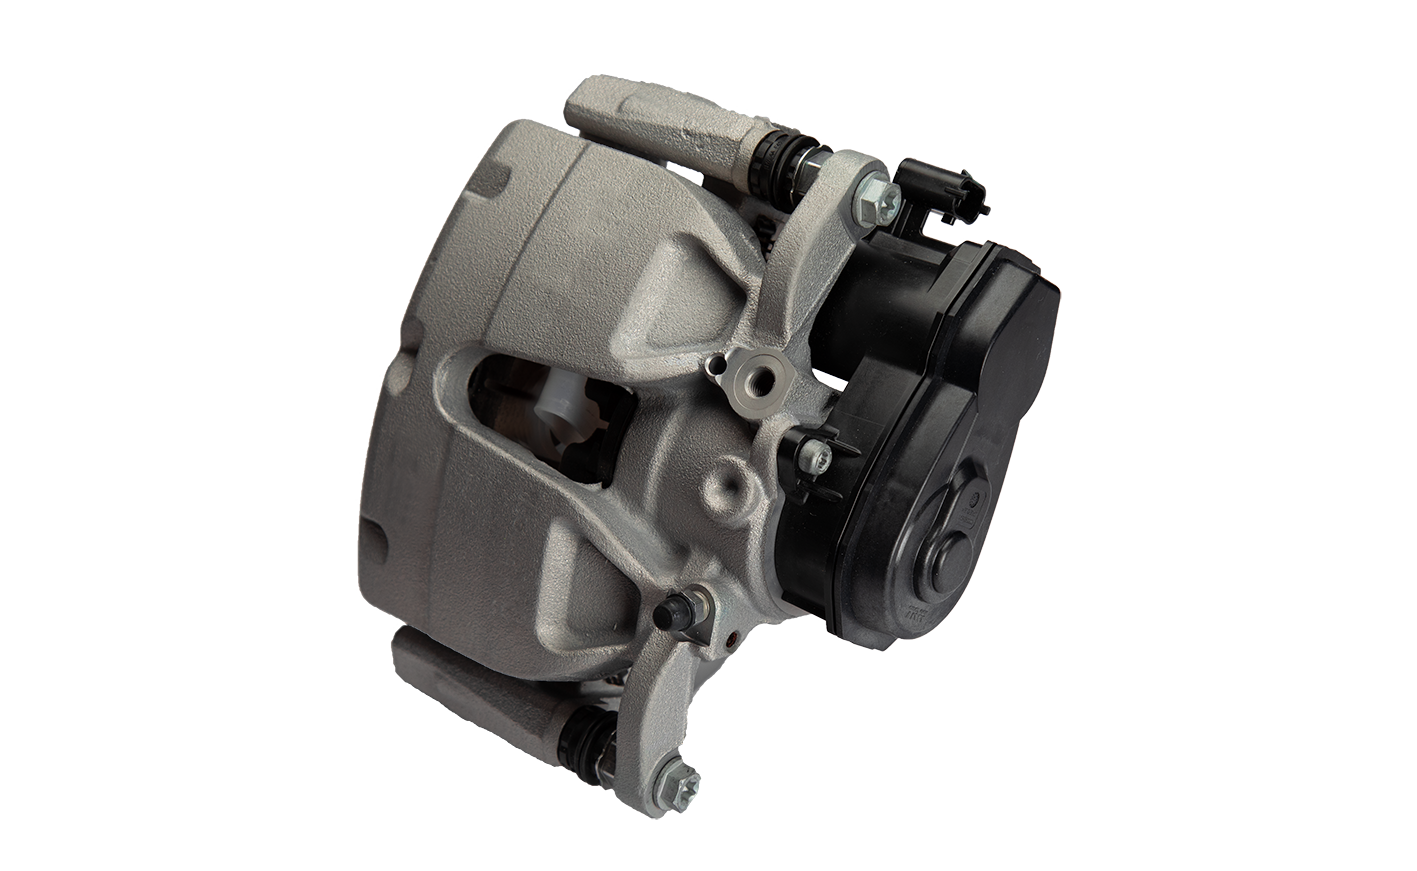 ZF_Front_Electric_Park_Brake